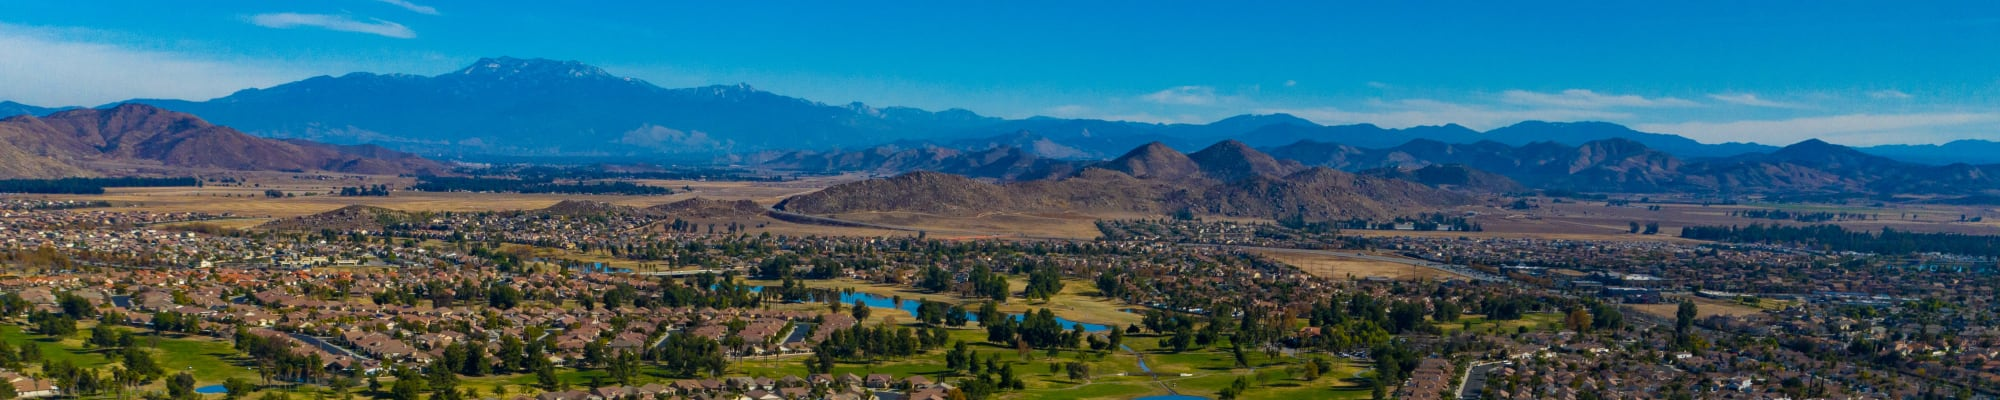 WellQuest of Menifee Lakes in Menifee, California offers family resources for senior living